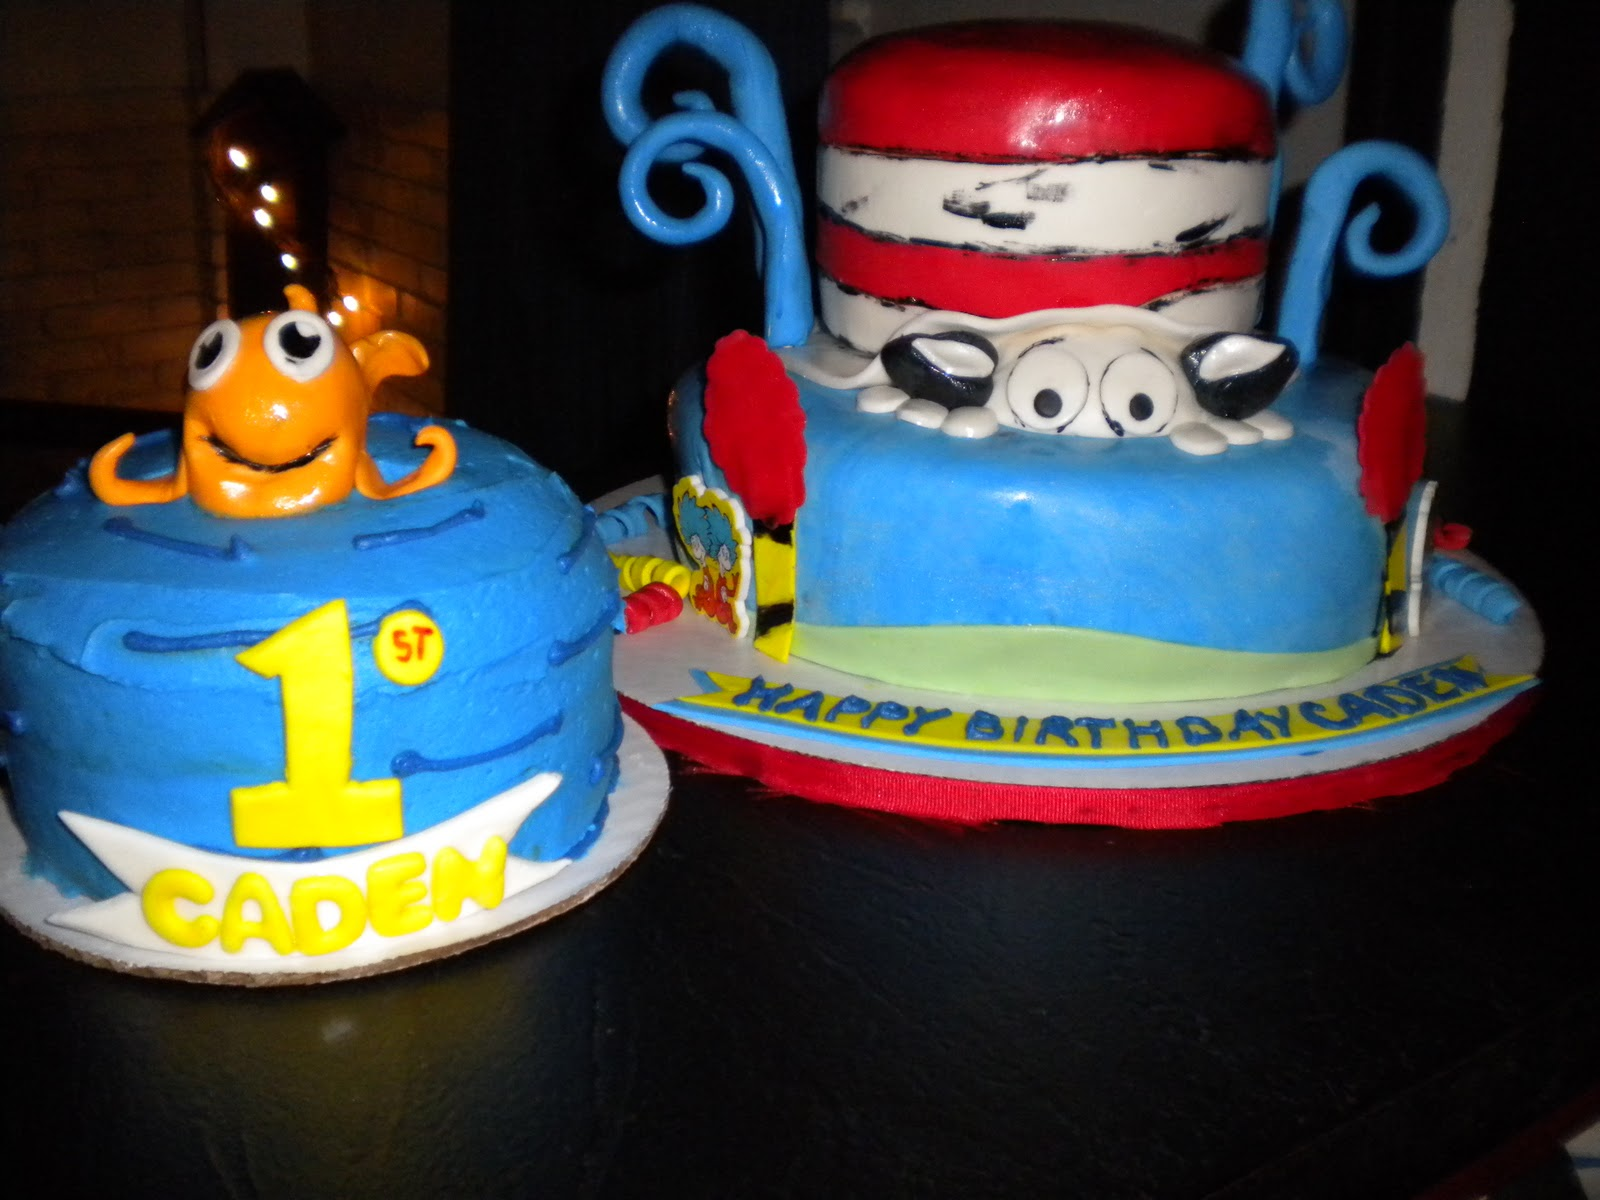 suess graduation cake harley davidson cake monkey baby shower cake